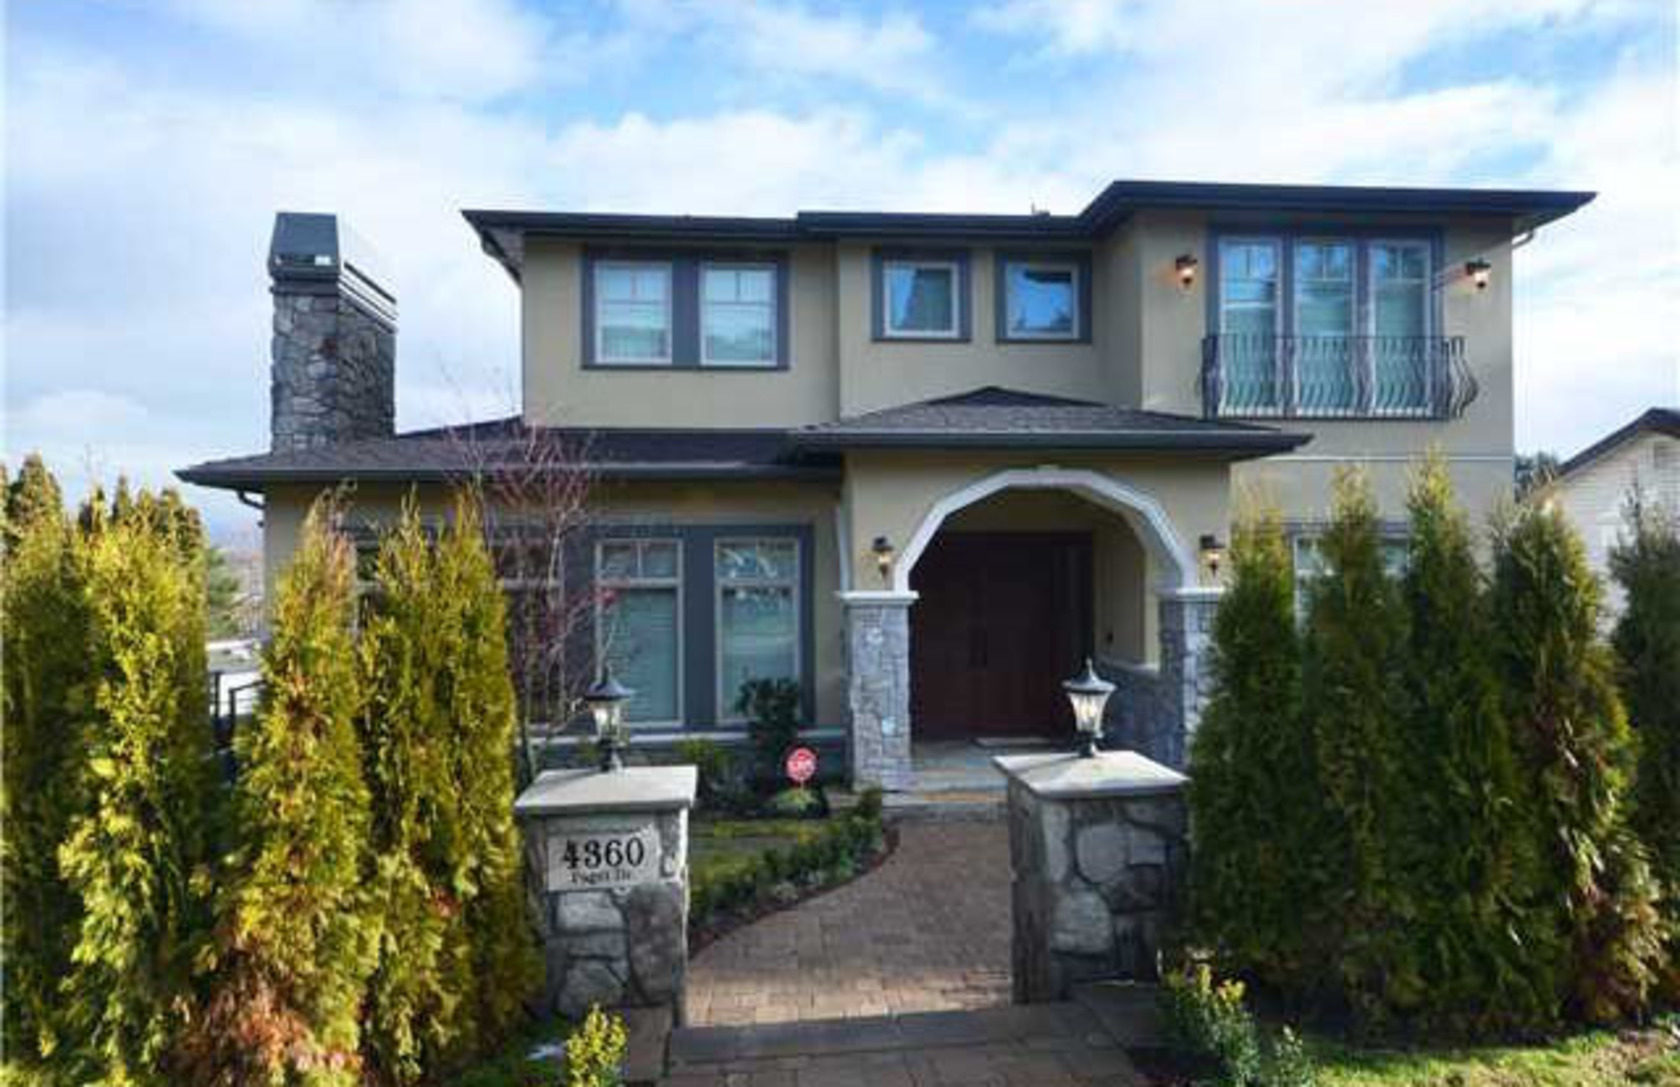 4360 Puget Drive, Quilchena, Vancouver West